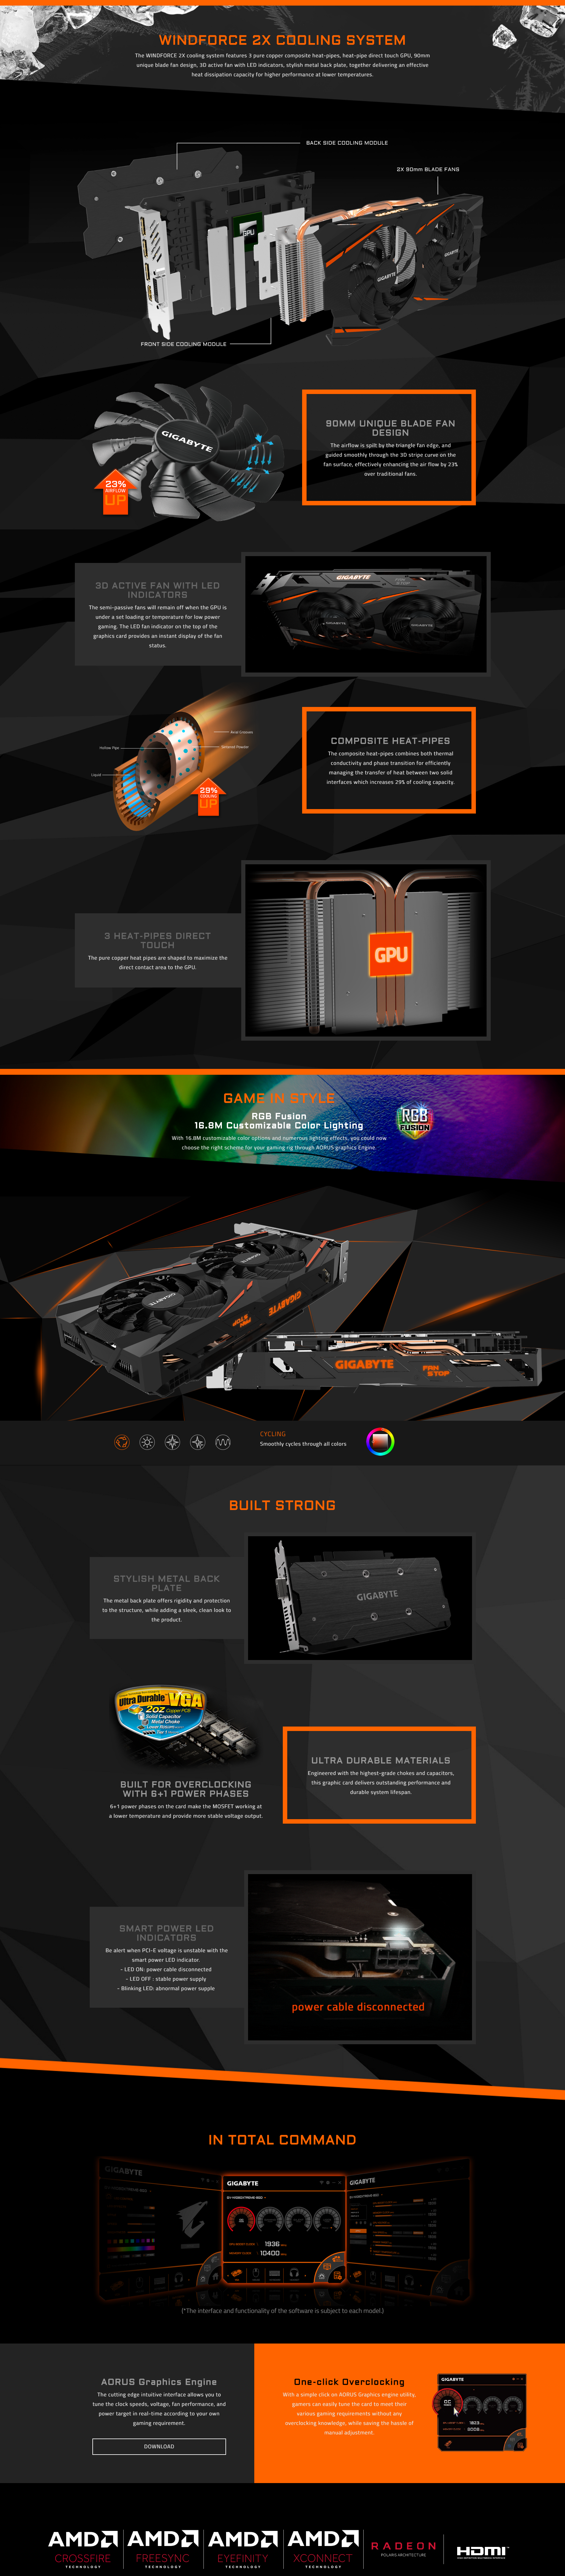 A large marketing image providing additional information about the product Gigabyte Radeon RX570 Gaming 4GB GDDR5 - Additional alt info not provided